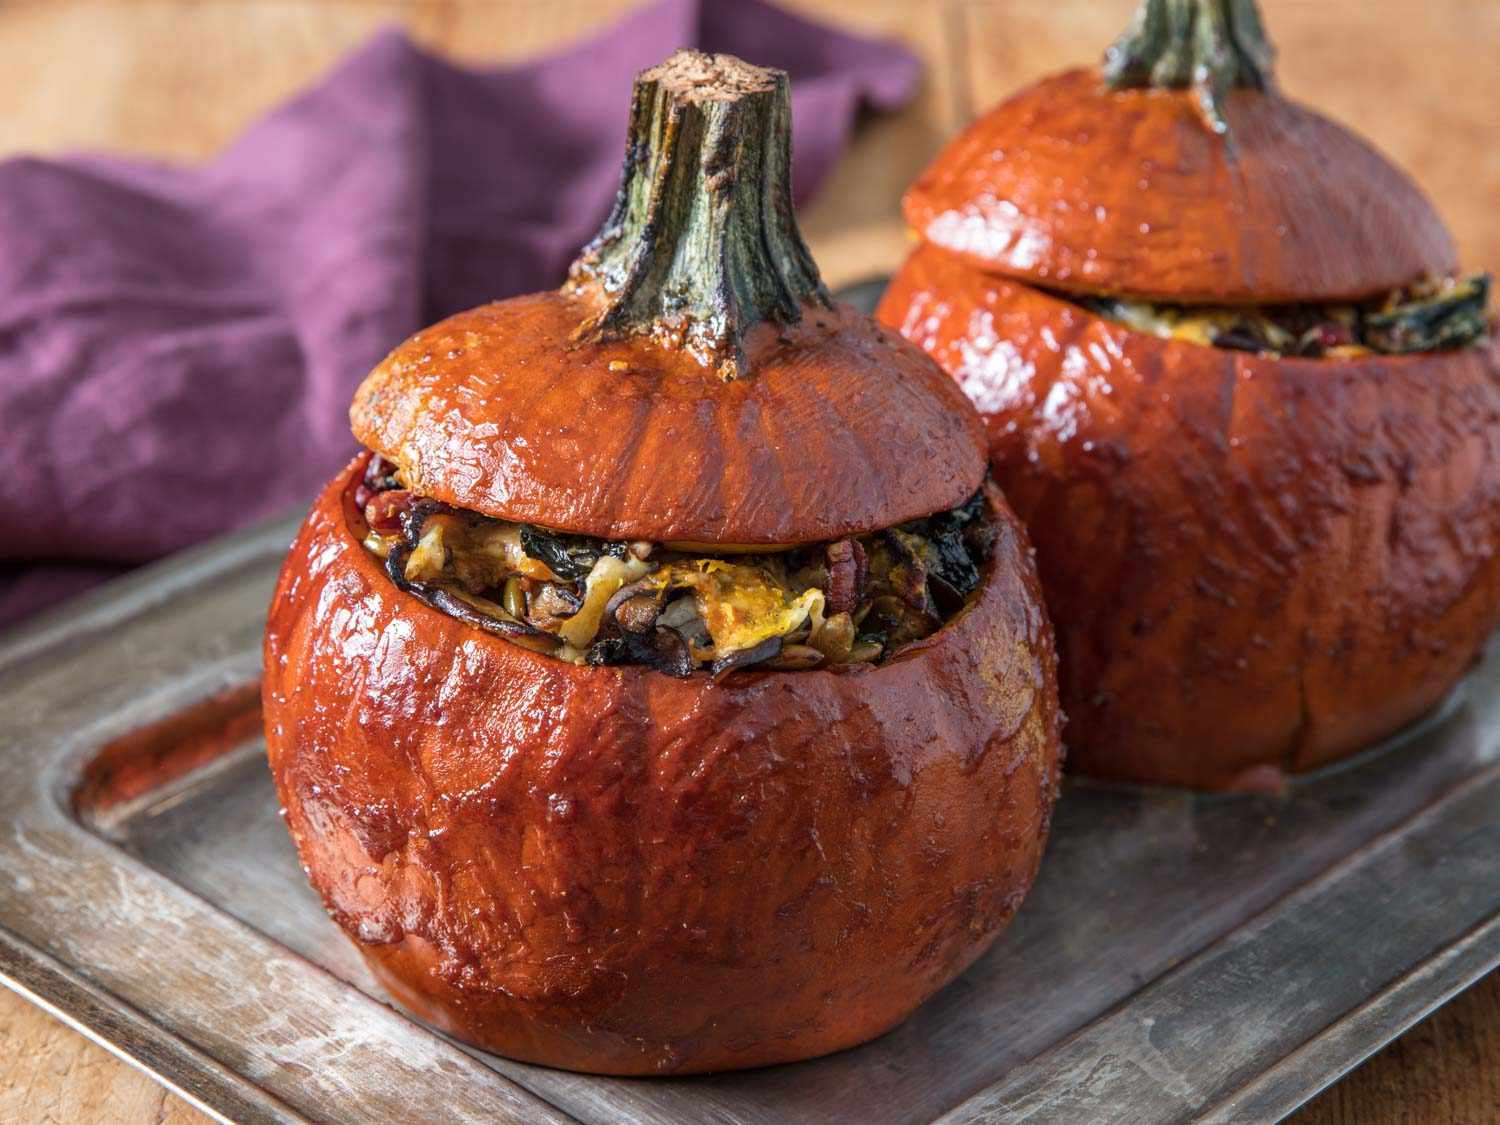 Stuffed pumpkins with Gruyere, mushrooms, kale (for Thanksgiving and holidays), glazed and tops on.